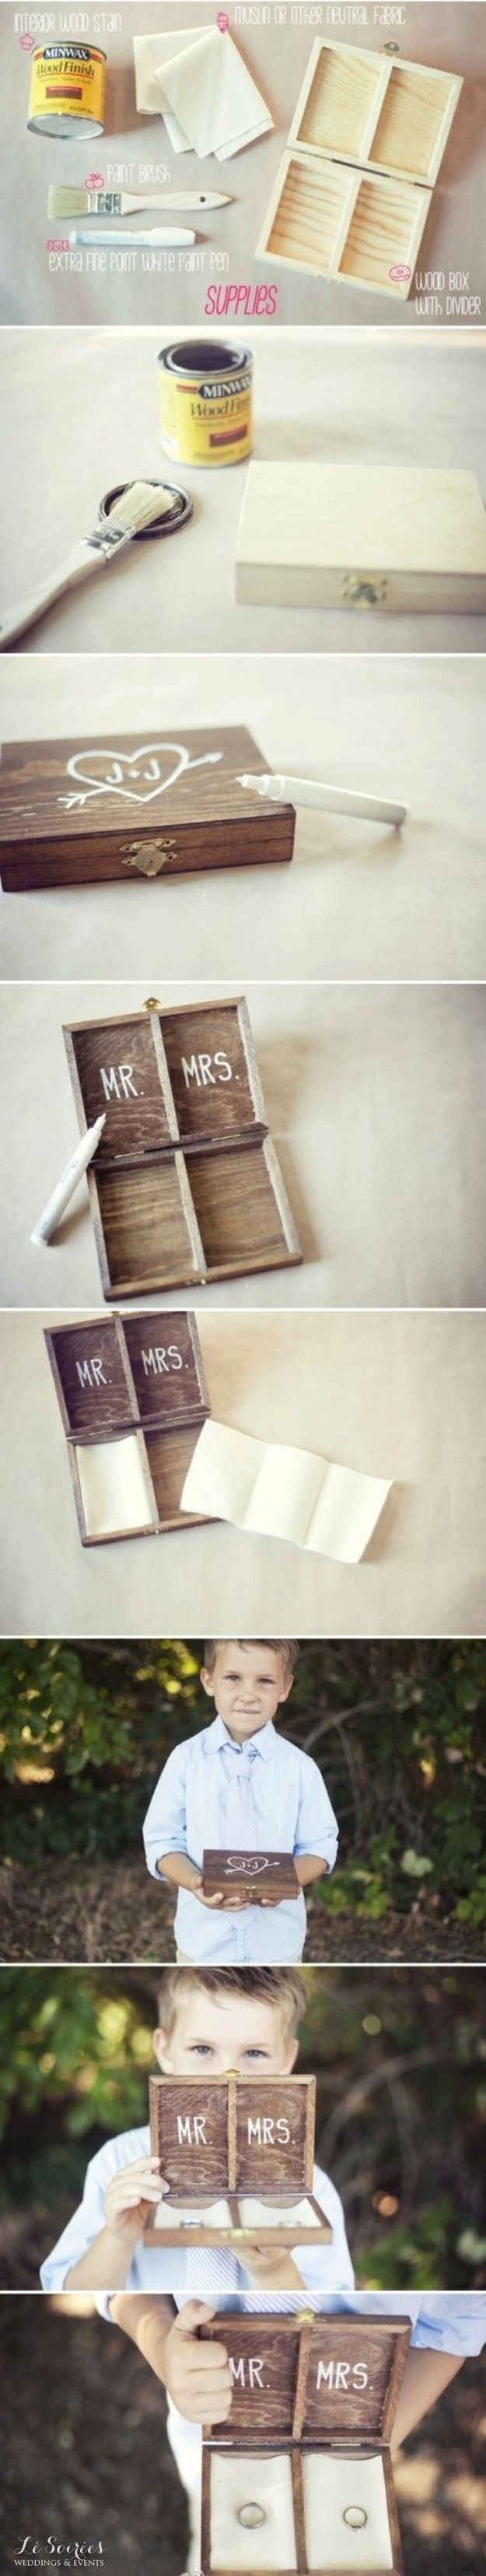 Caja de Anillo portador en lugar de una almohada. | 23 Unconventional But Awesome Wedding Ideas